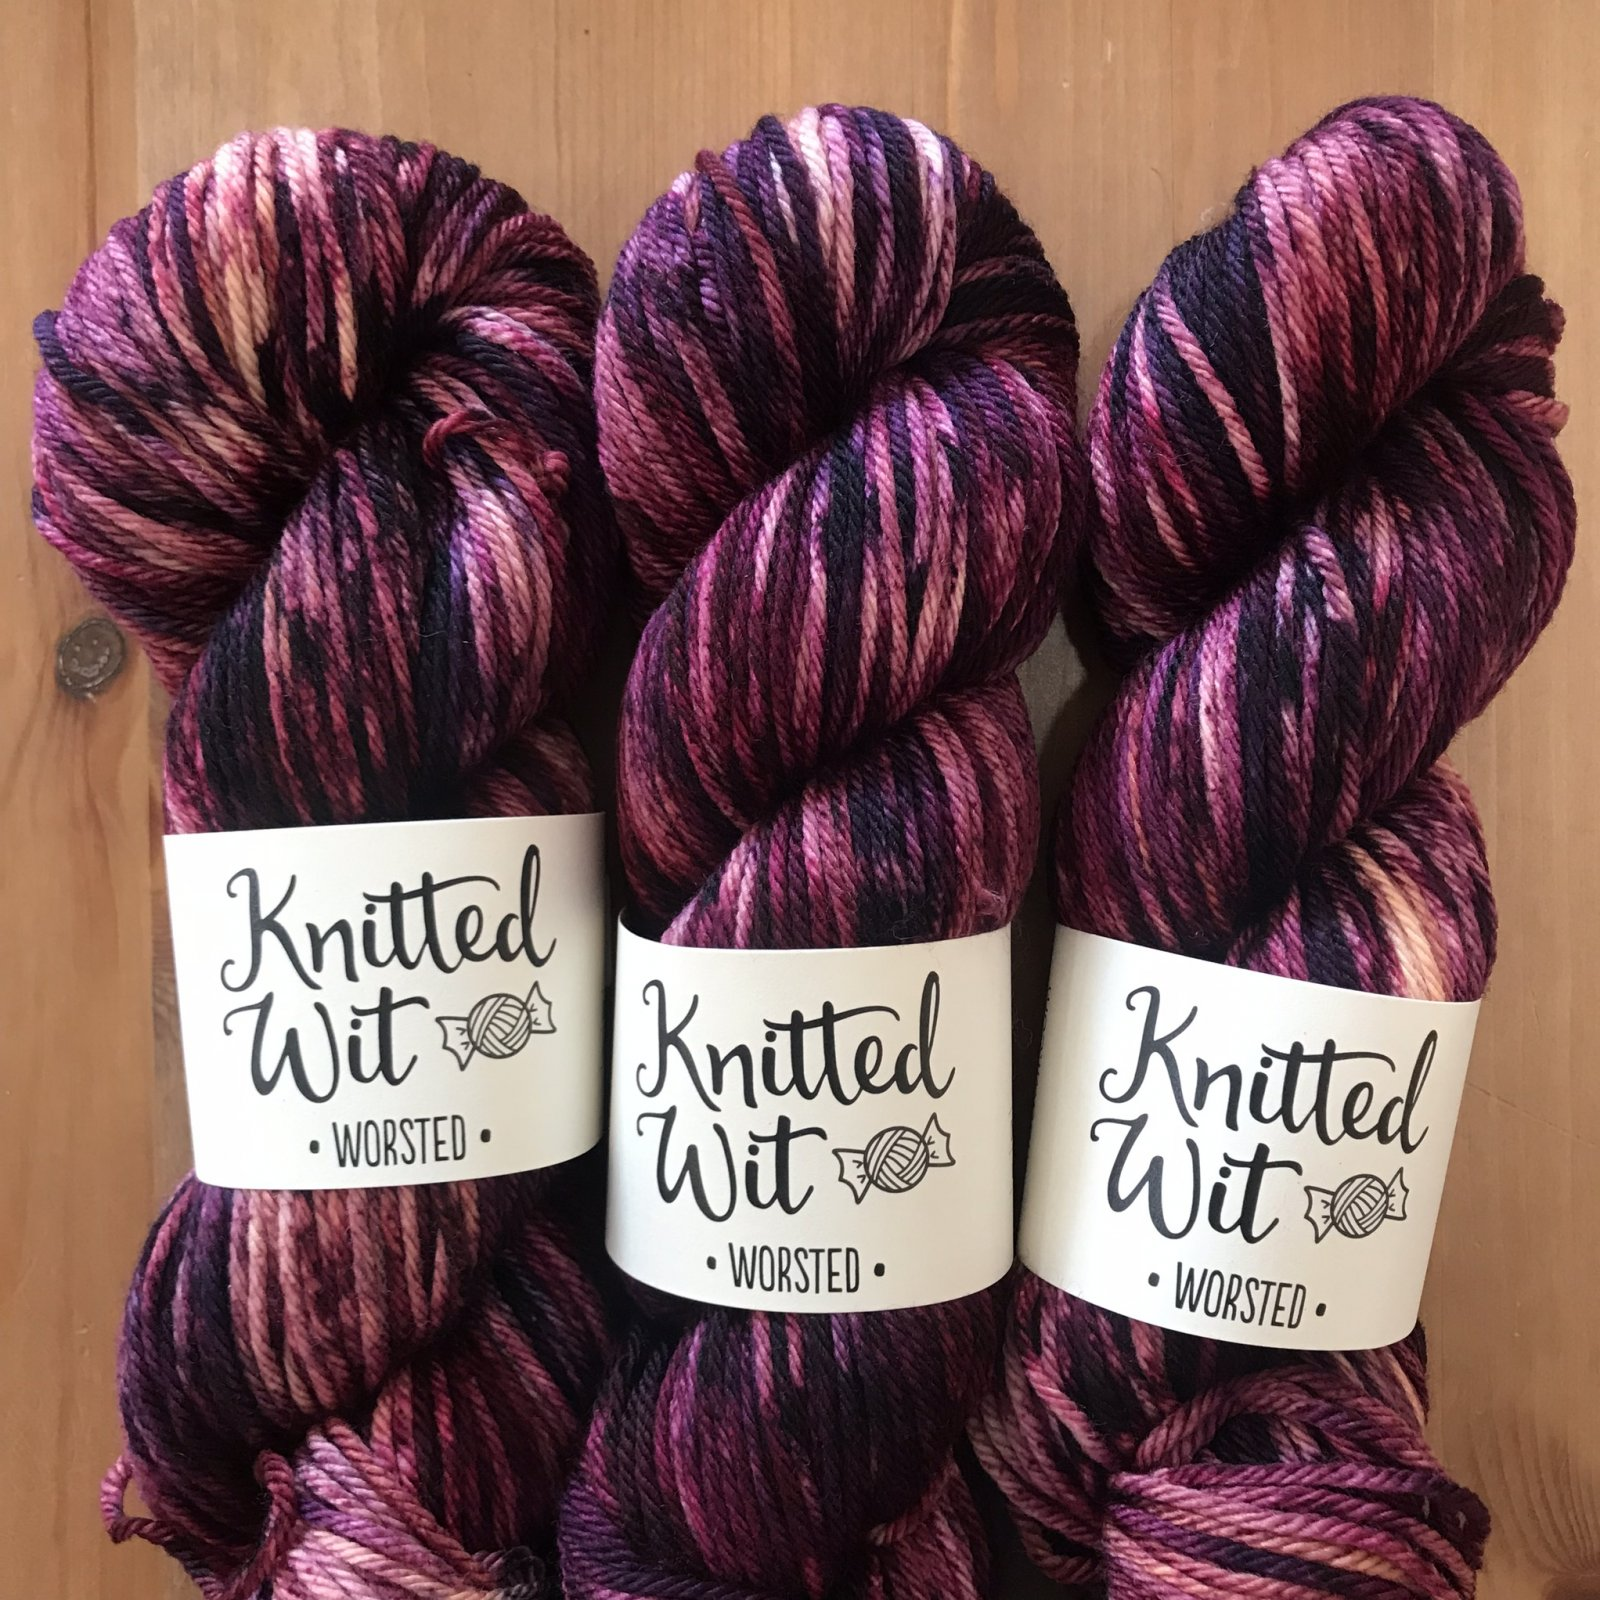 KW Worsted in Nettlewing